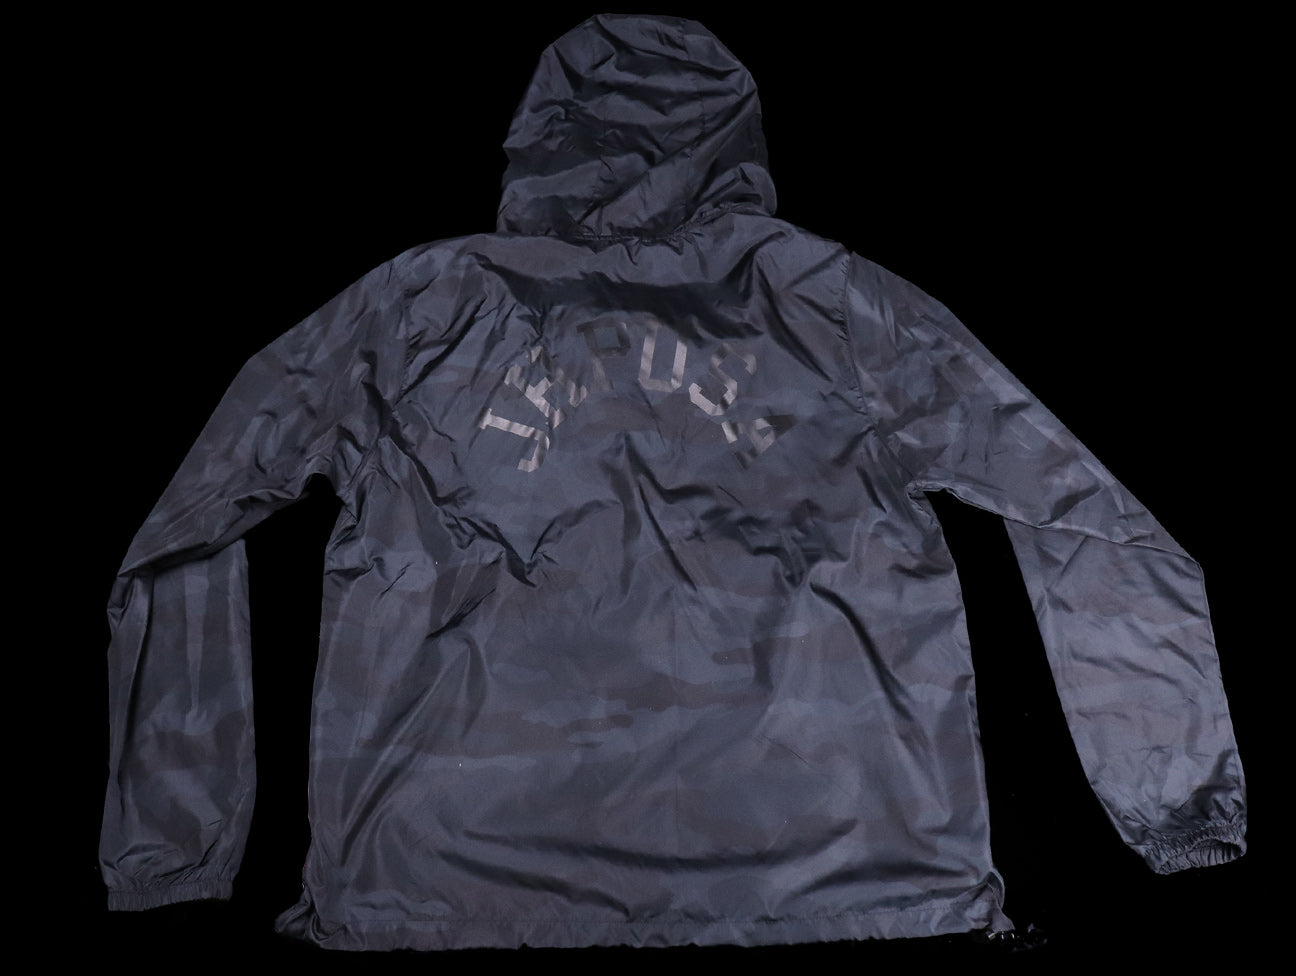 JHPUSA Windbreaker Anorak Jacket - Black Camo